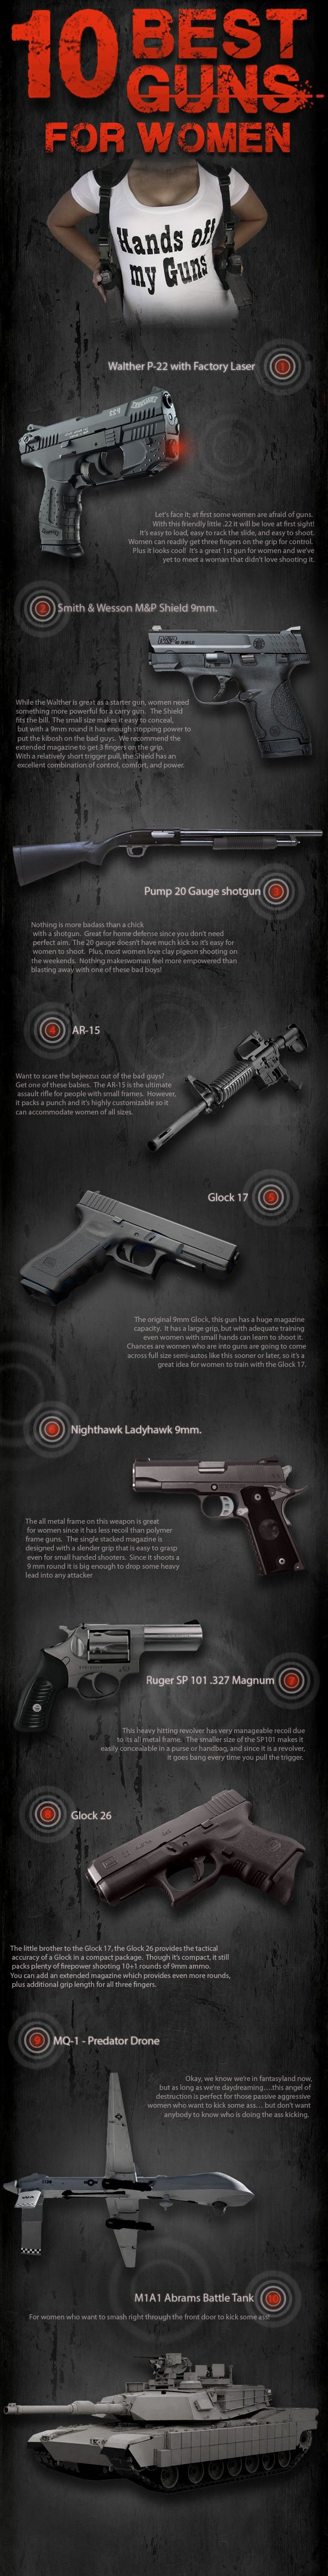 Complete Guide to Guns & Shooting: John Malloy ...